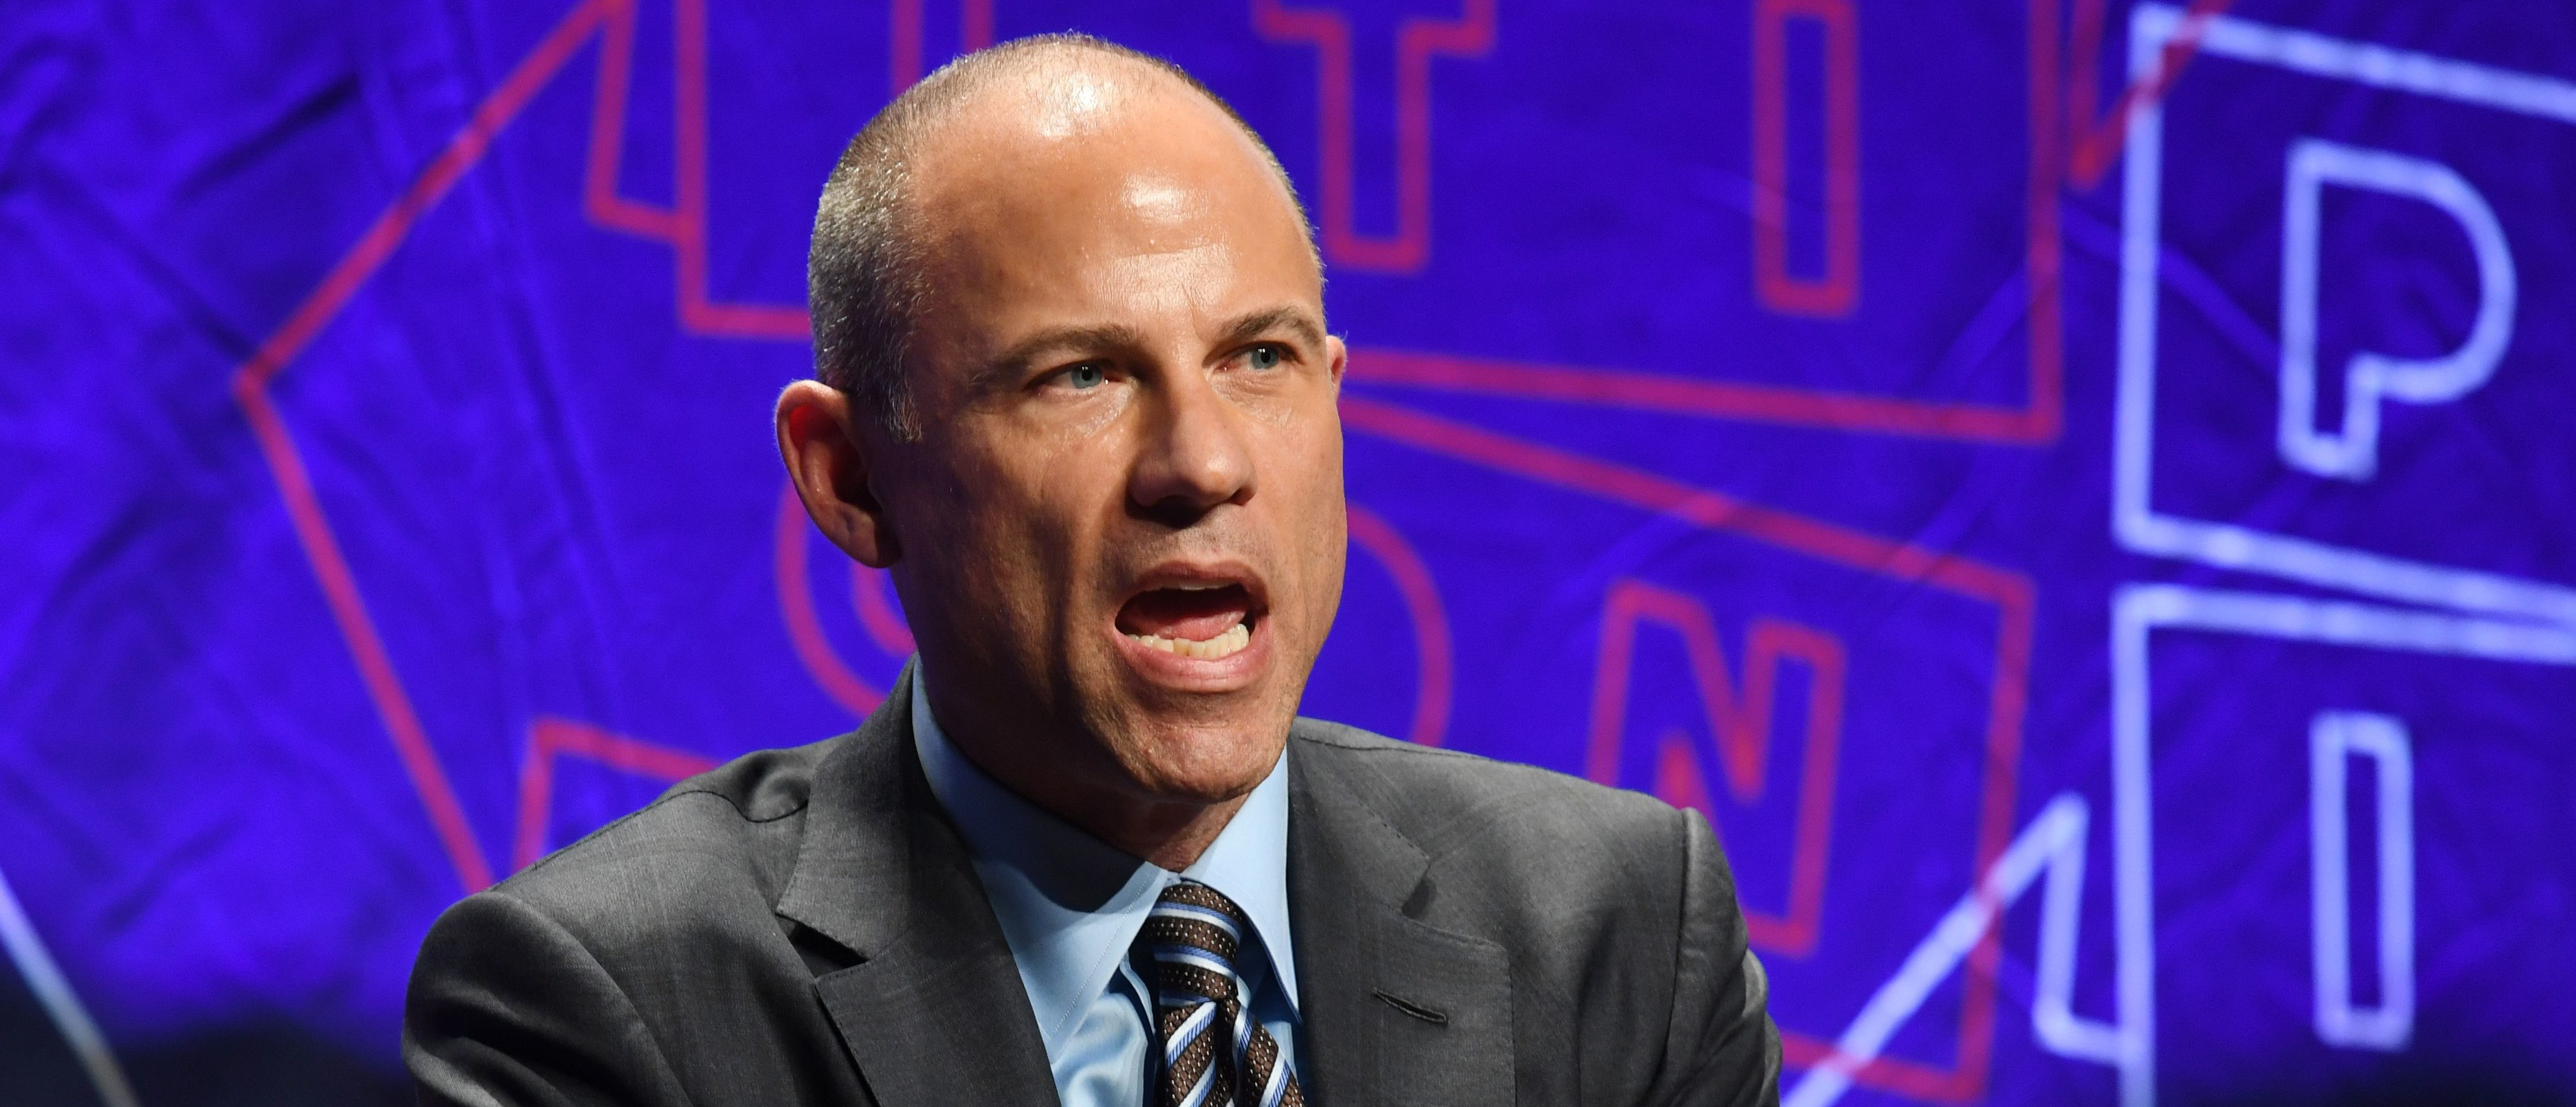 Attorney Michael Avenatti speaks at the 'How to Beat Trump' panel at the 2018 Politicon in Los Angeles, California on October 20, 2018. - The two day event covers all things political with dozens of high profile political figures. (Photo by Mark RALSTON / AFP) (Photo credit should read MARK RALSTON/AFP/Getty Images)